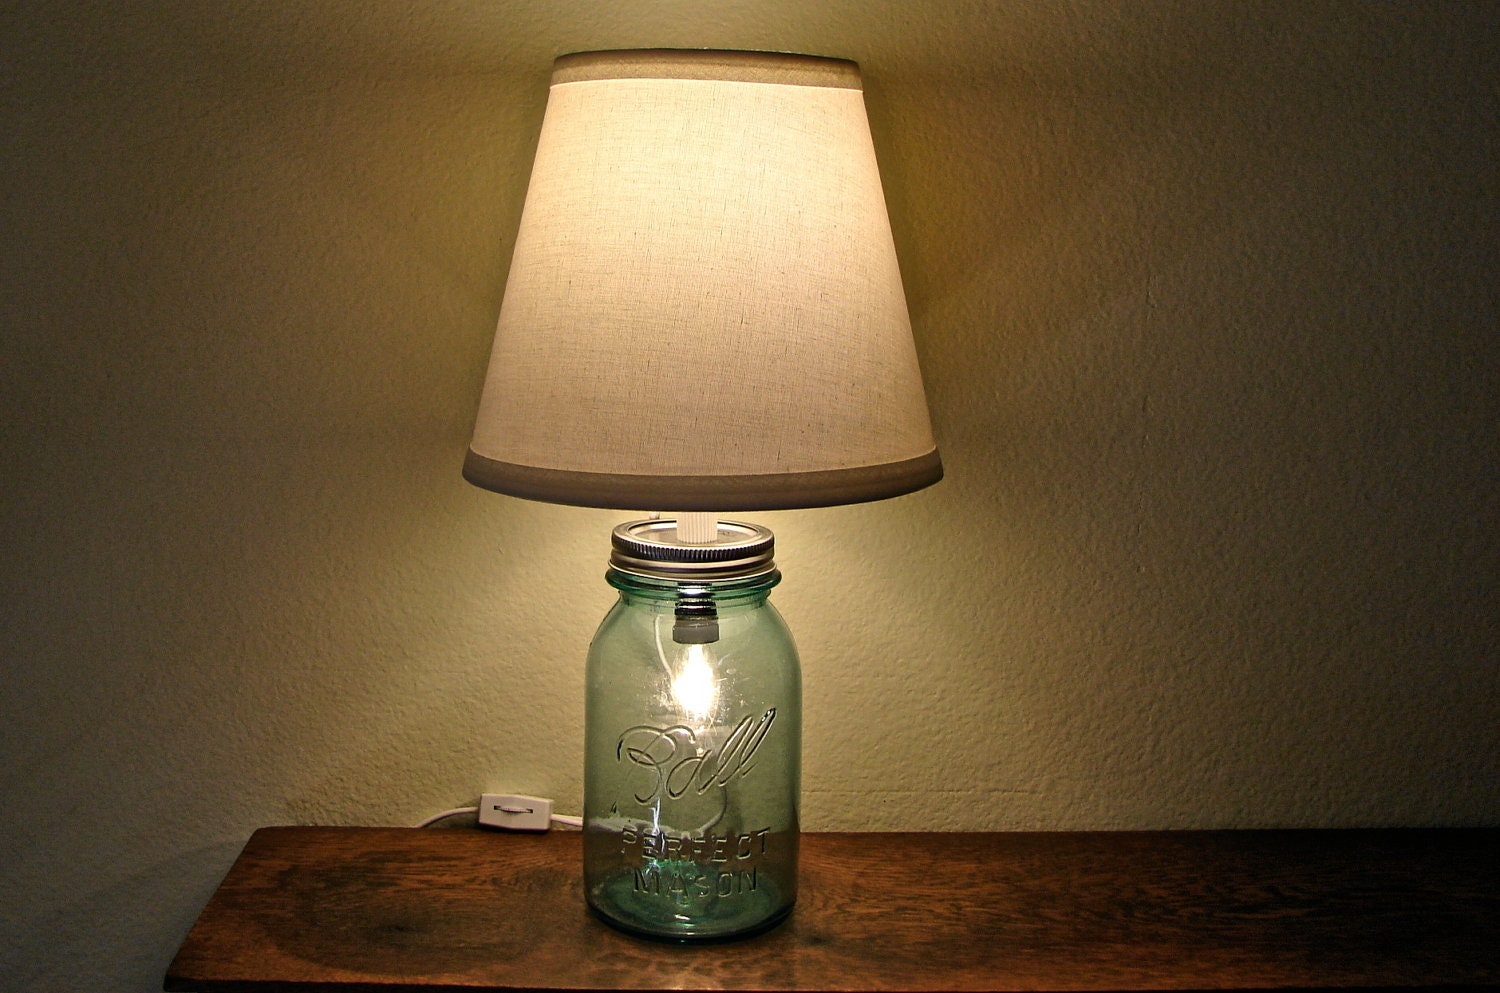 Discount vintage blue mason jar table lamp no shade two zoom arubaitofo Gallery